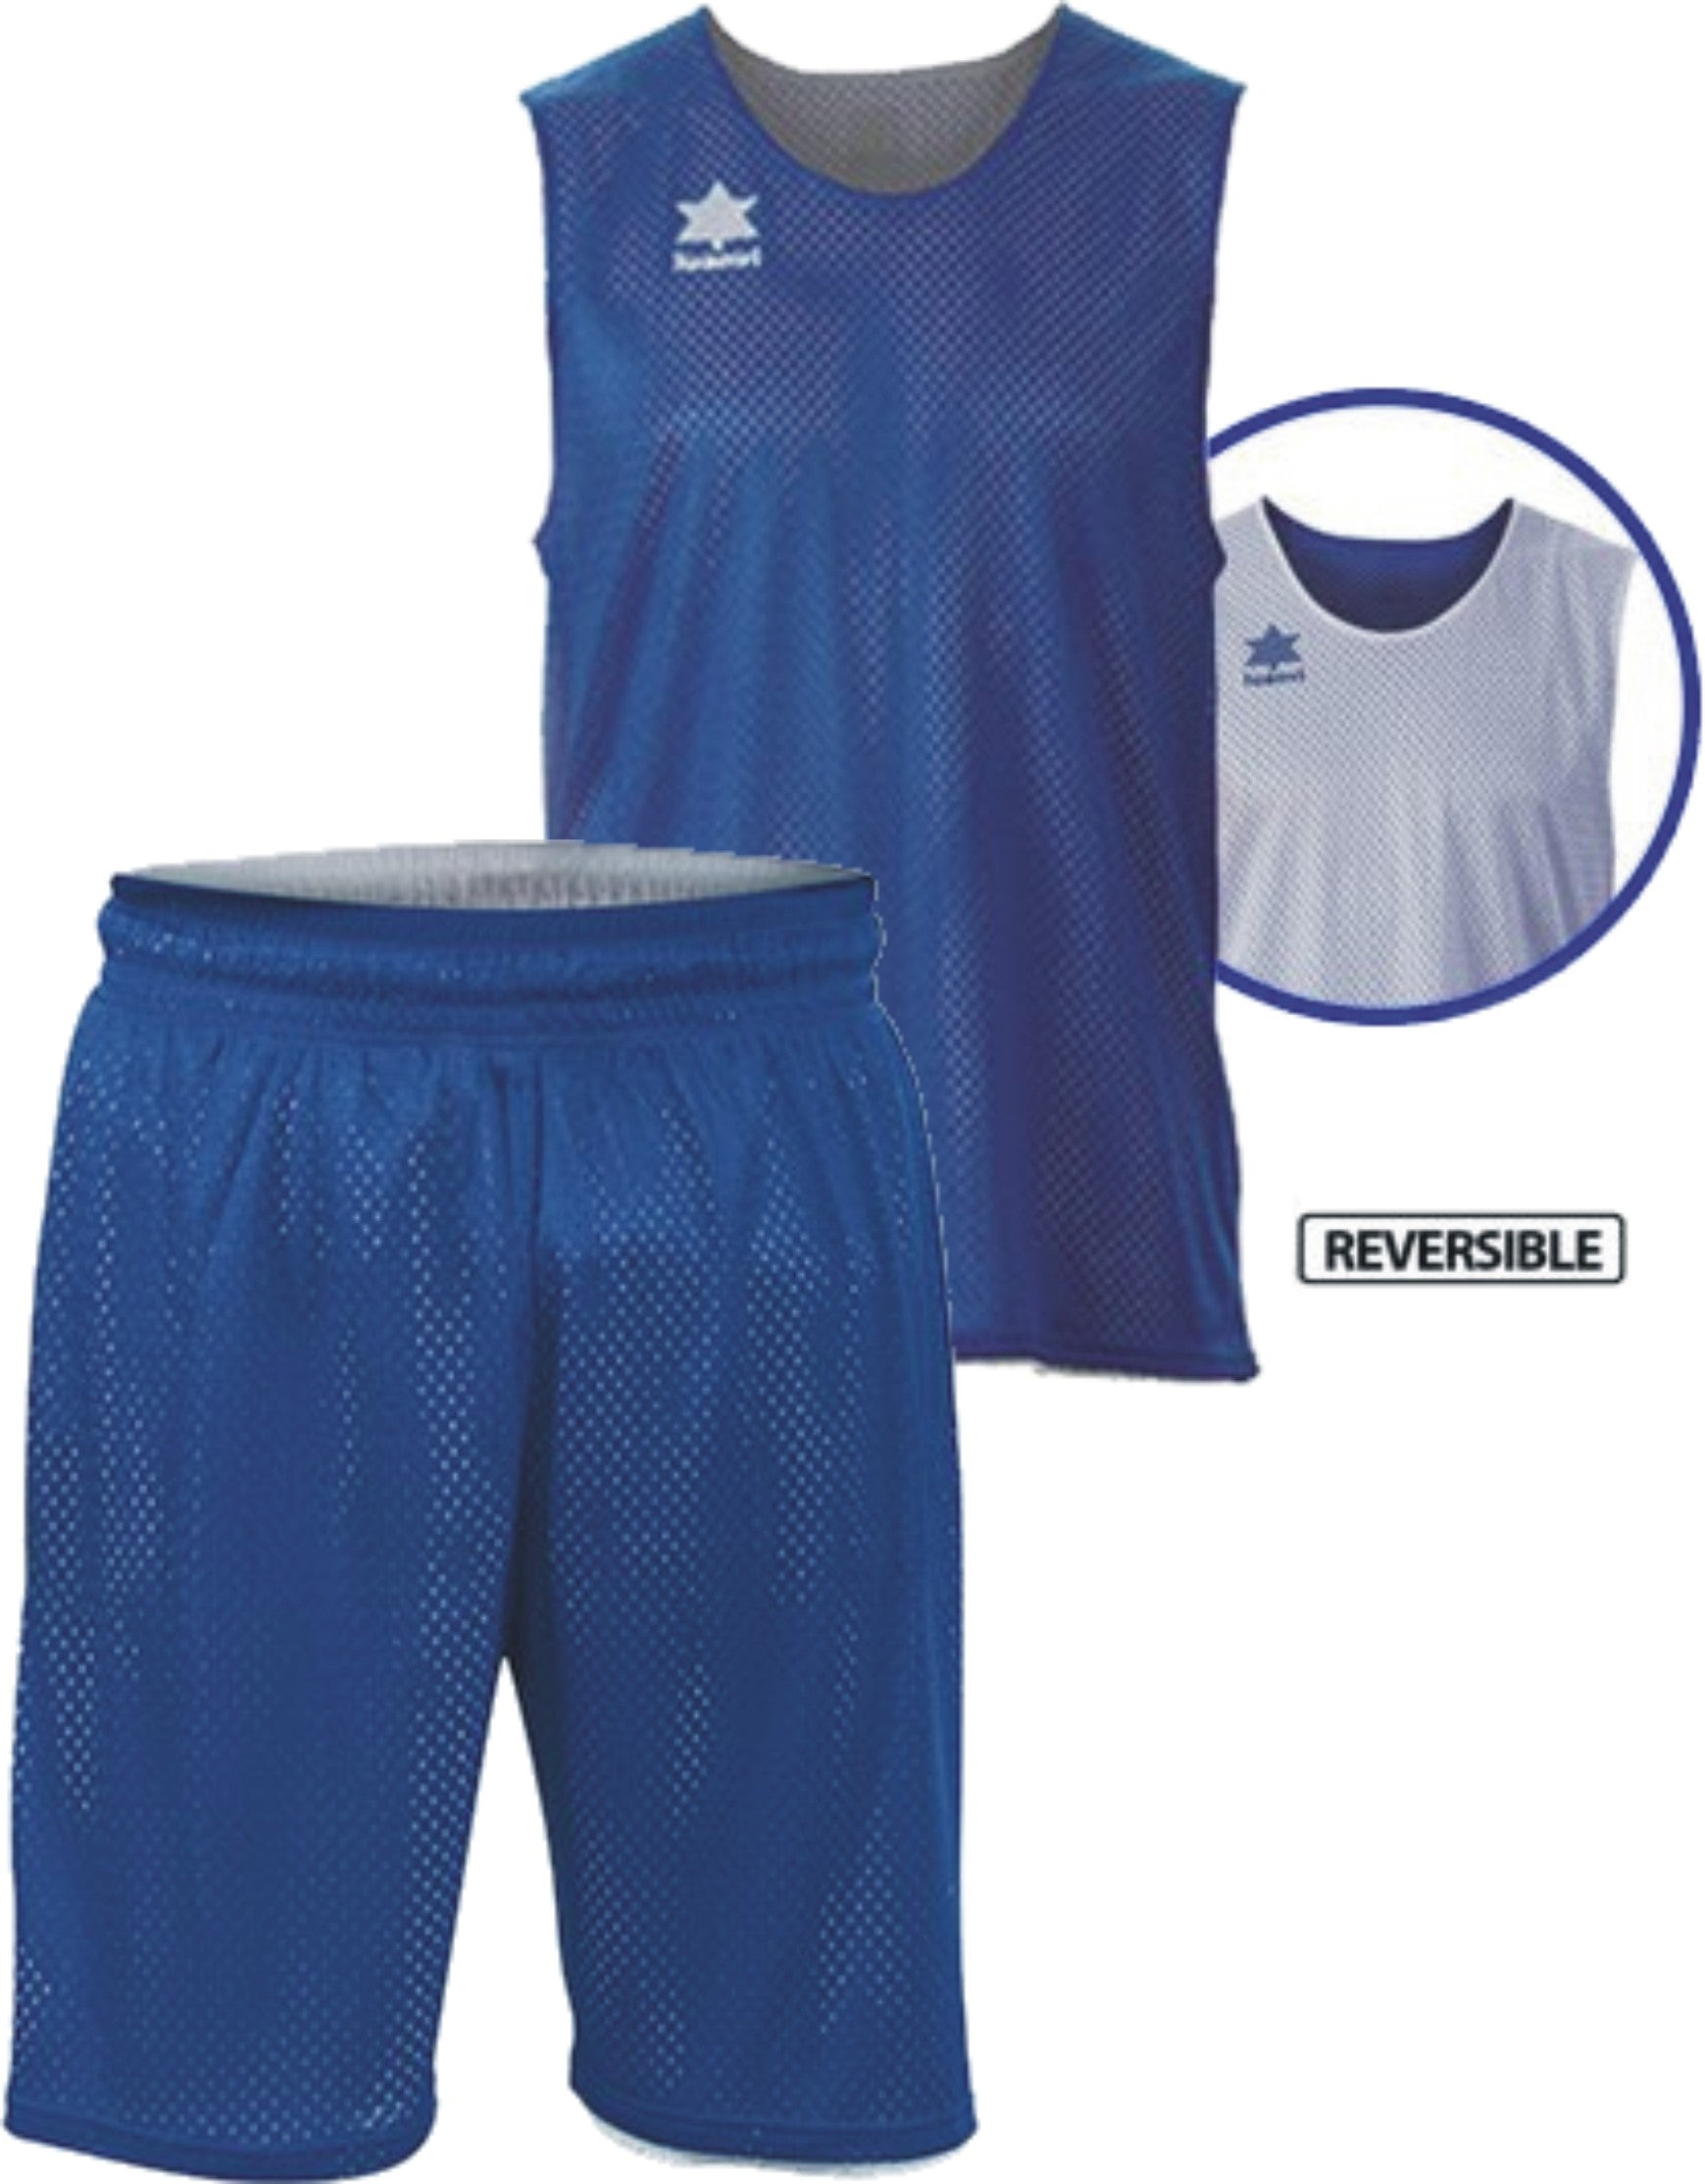 Luanvi Kids Triple Reversible Basketball Kit - Royal Blue/White LU-08484-1502-08485-1502